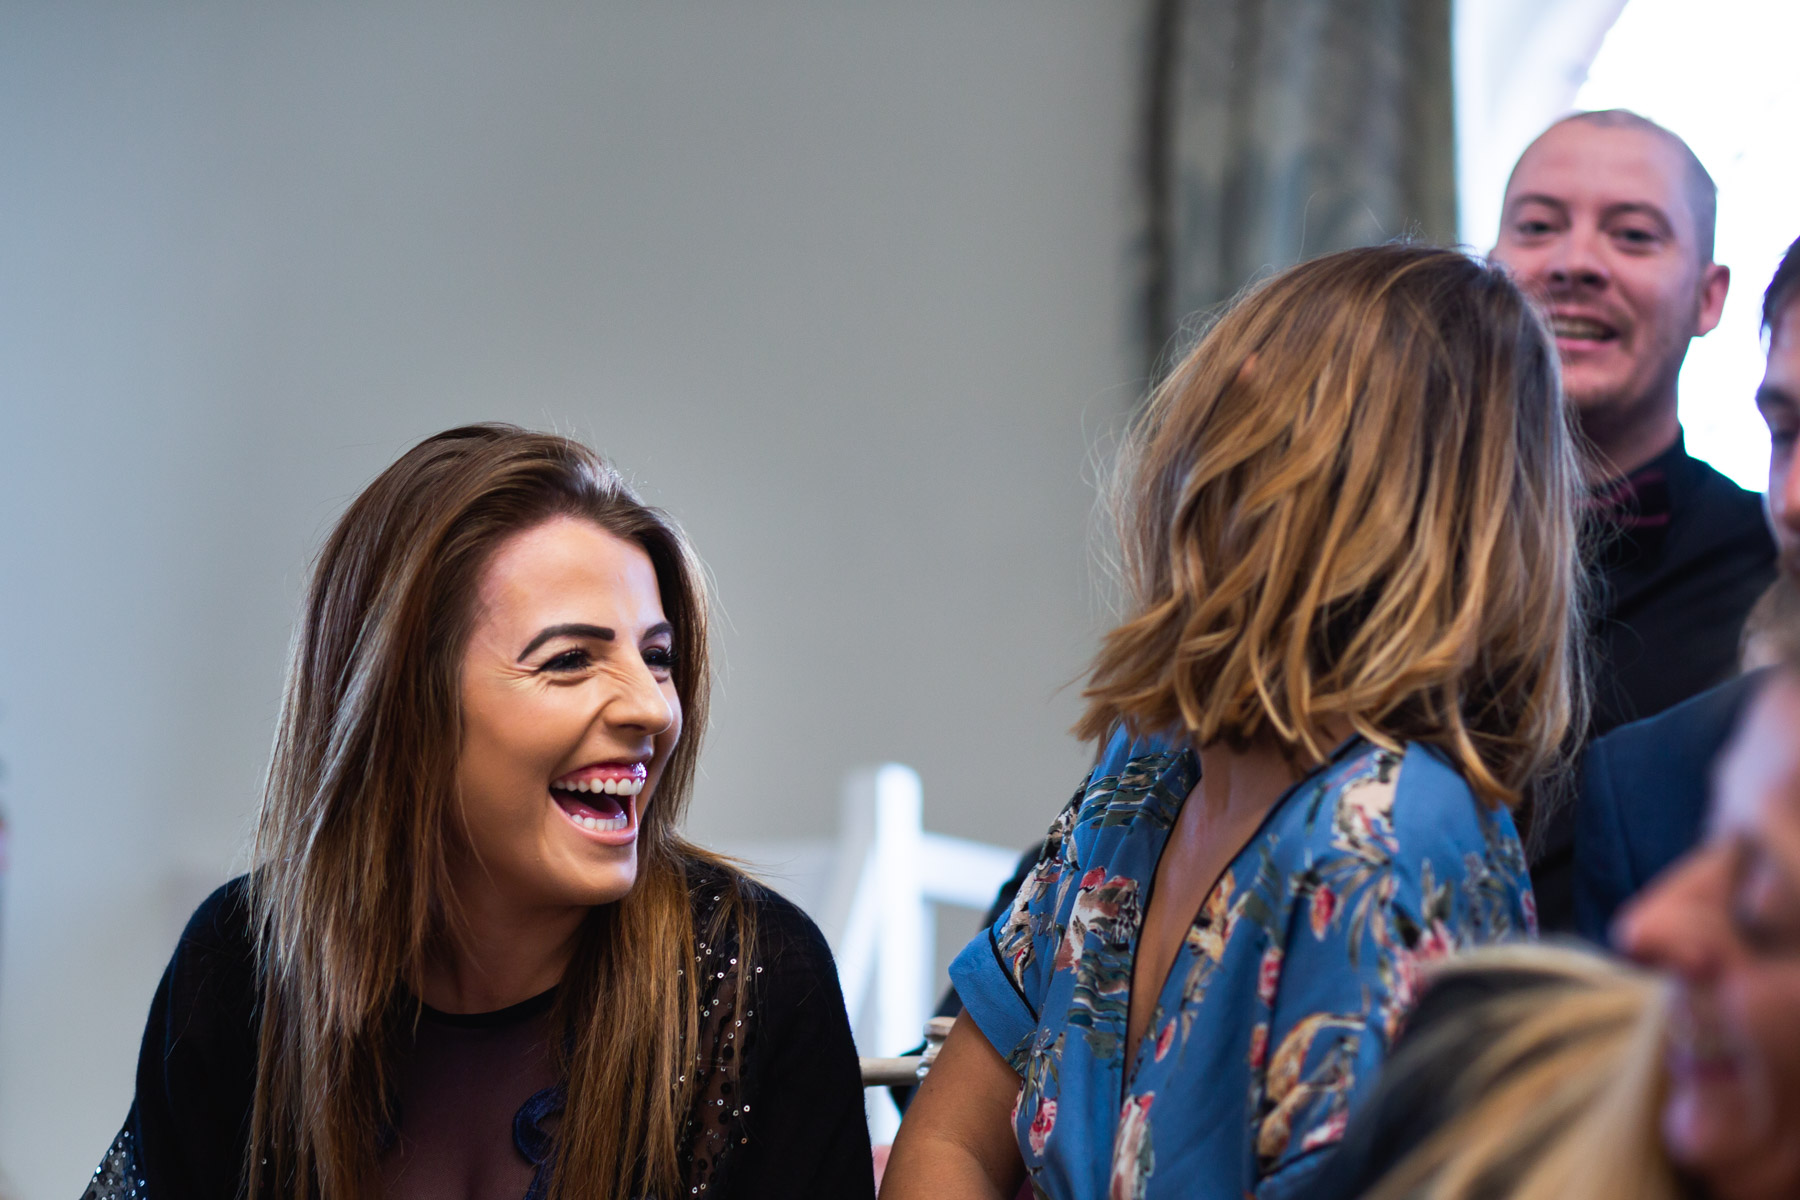 Guests laughing at joke at wedding ceremony